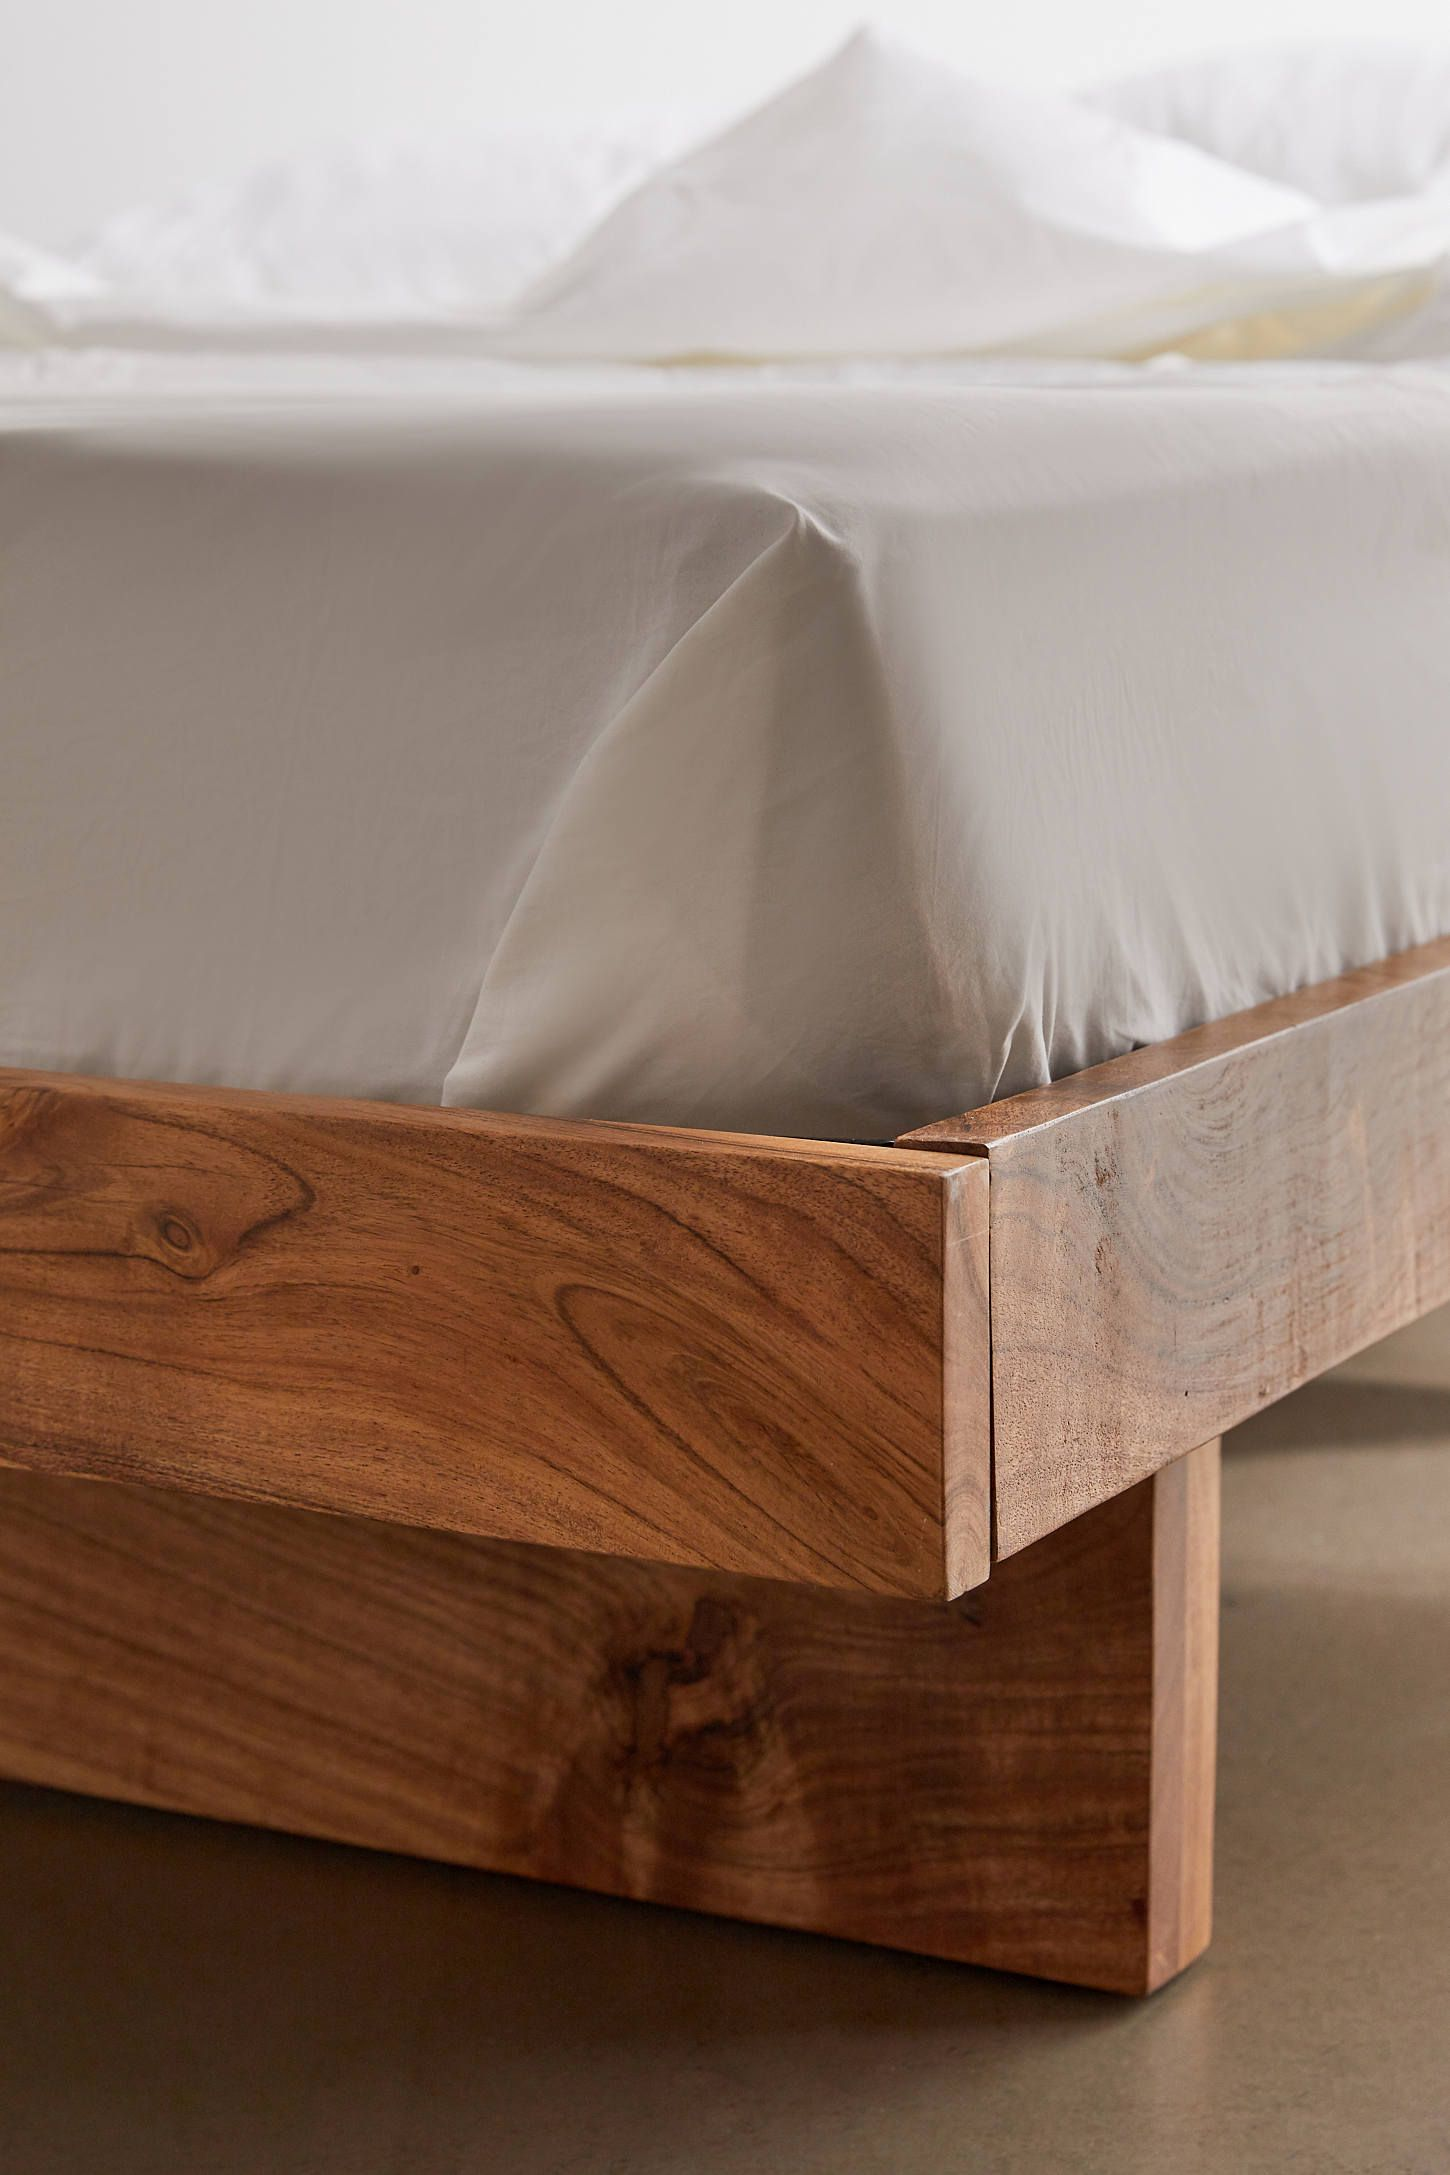 Pin by Eric Ebersole on Bed in 2020 Minimalist bed frame